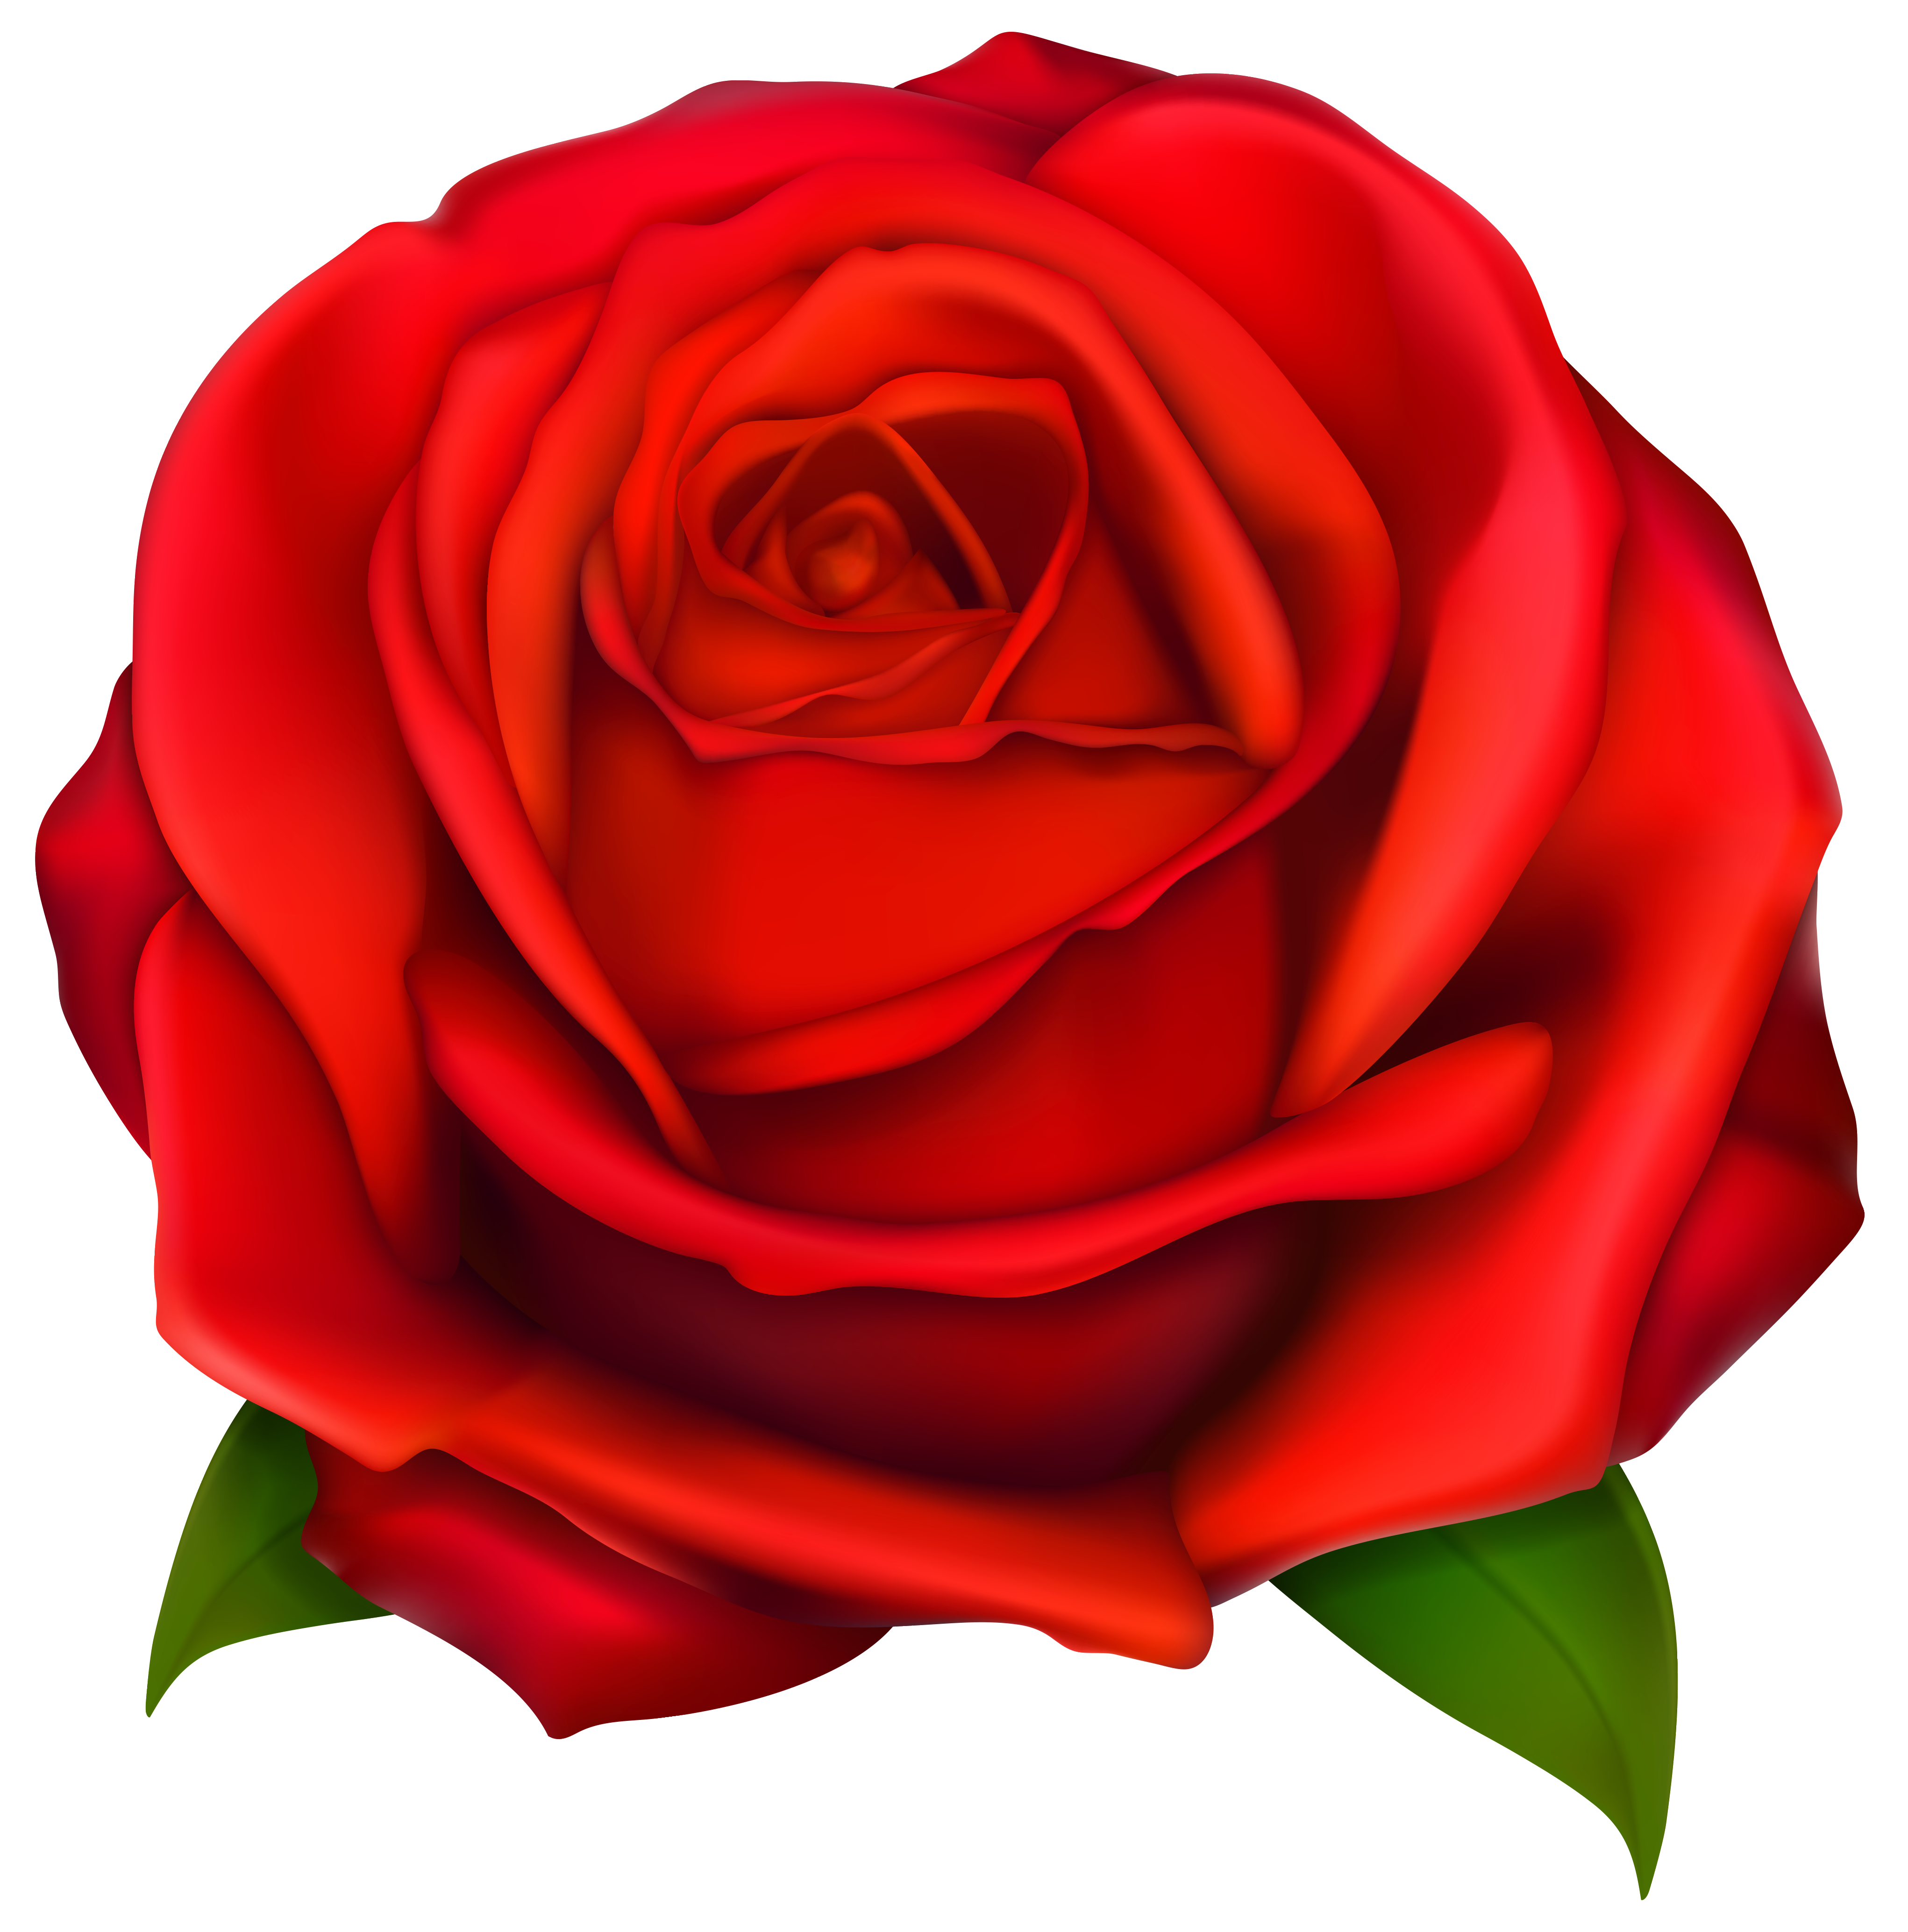 4084x4136 Image Of Clip Art Red Rose